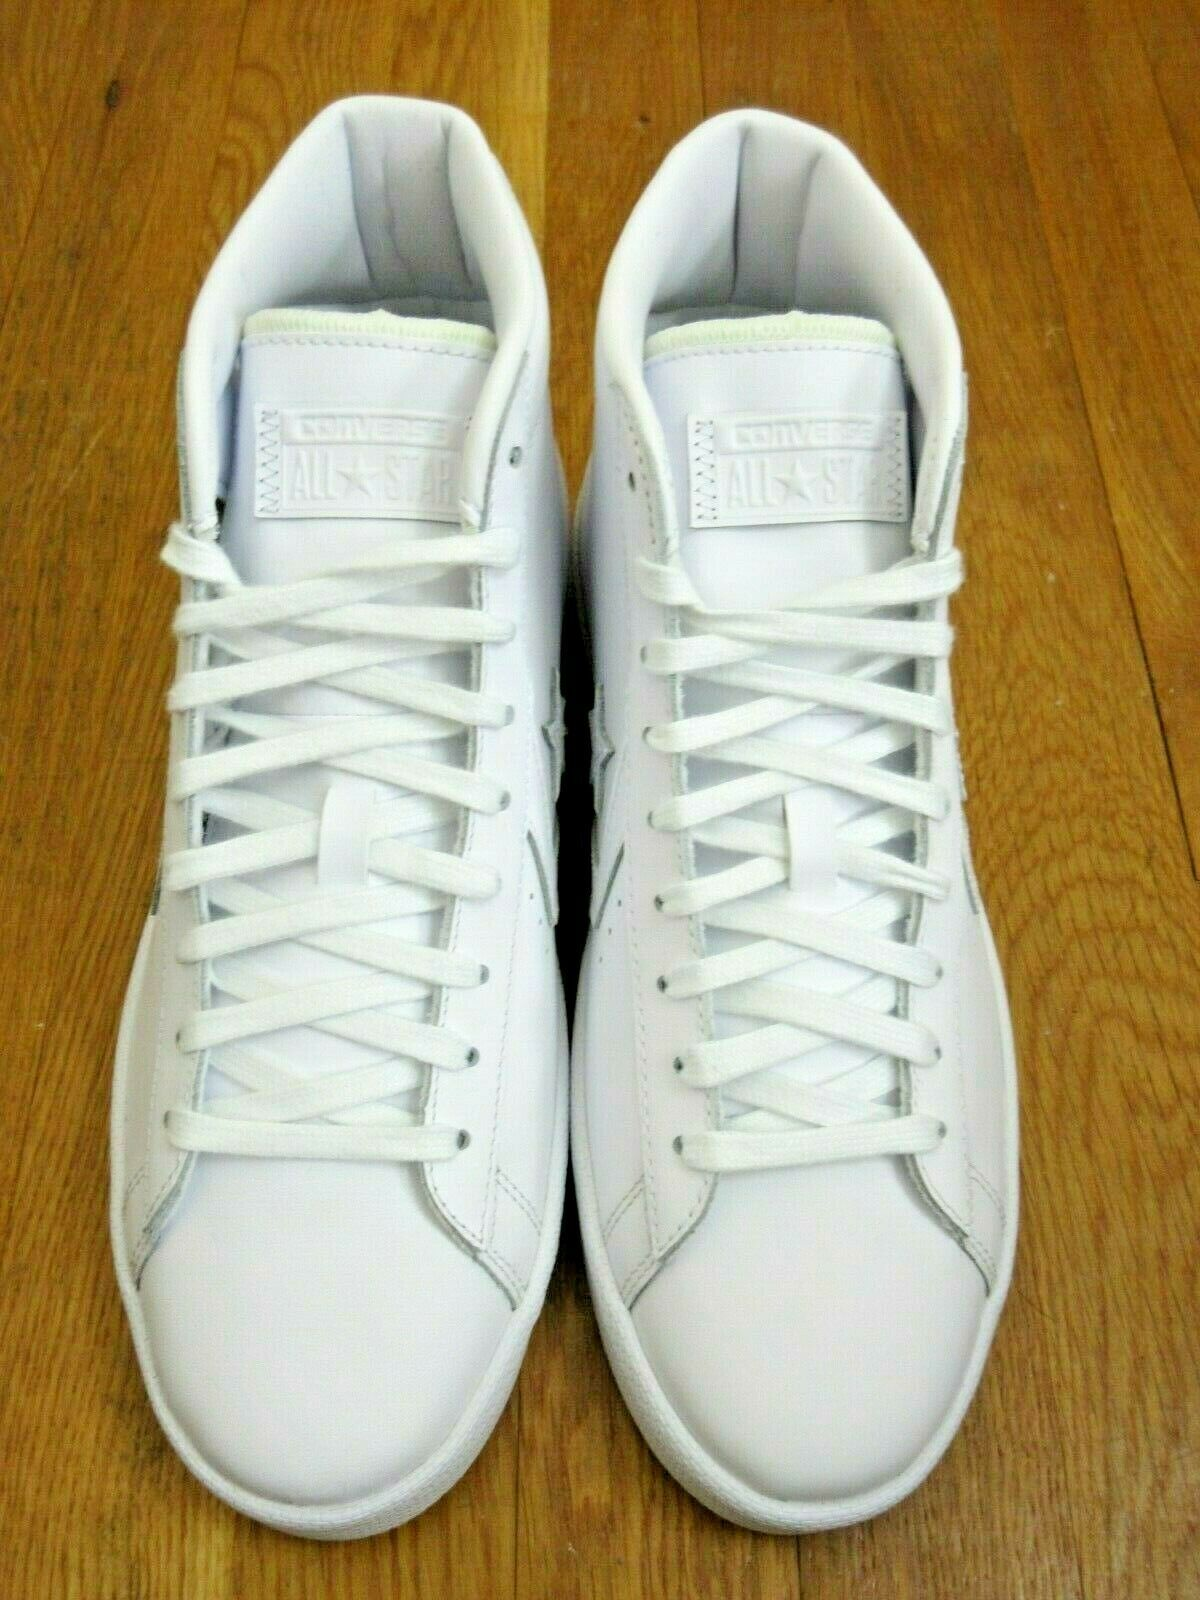 Converse Mens PL 76 Mid Leather Basketball Shoes Classic Triple White Size 9   image 3